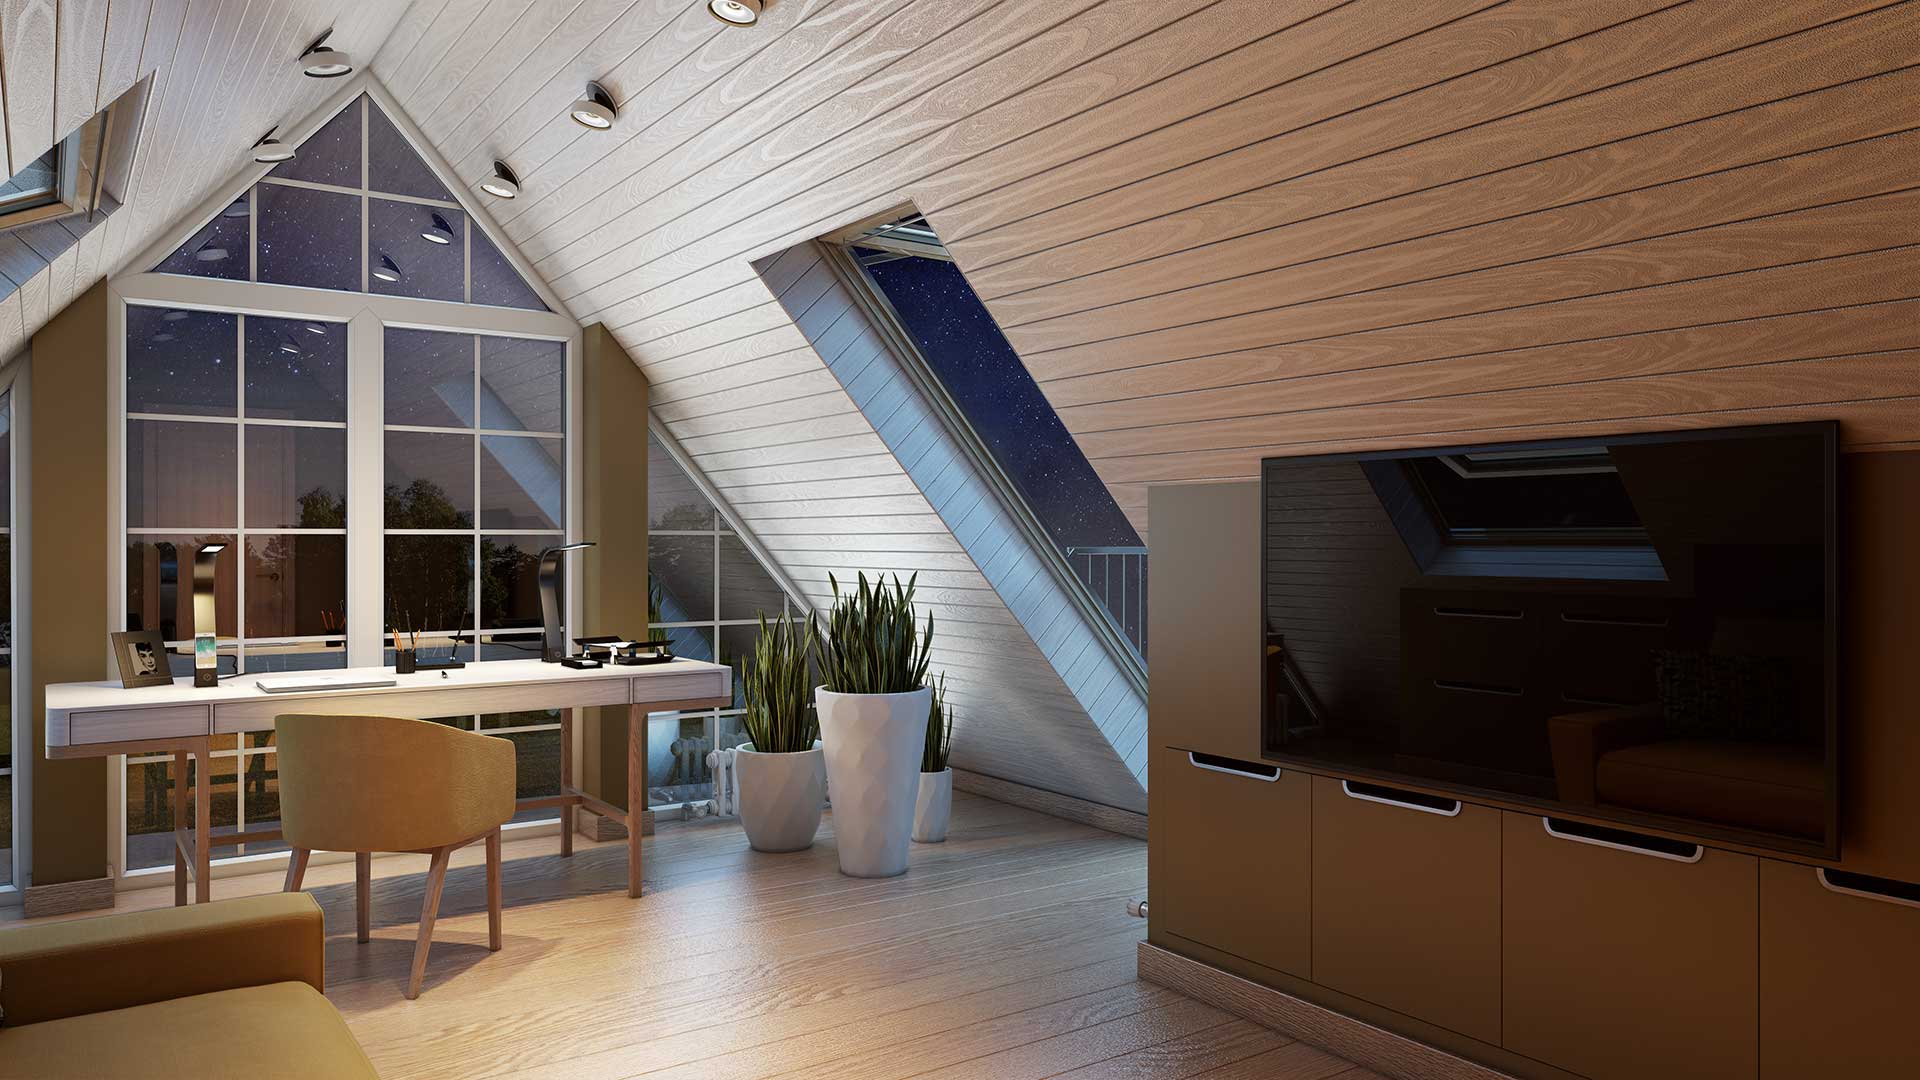 A Lifestyle 3D Picture of an Evening Attic Study